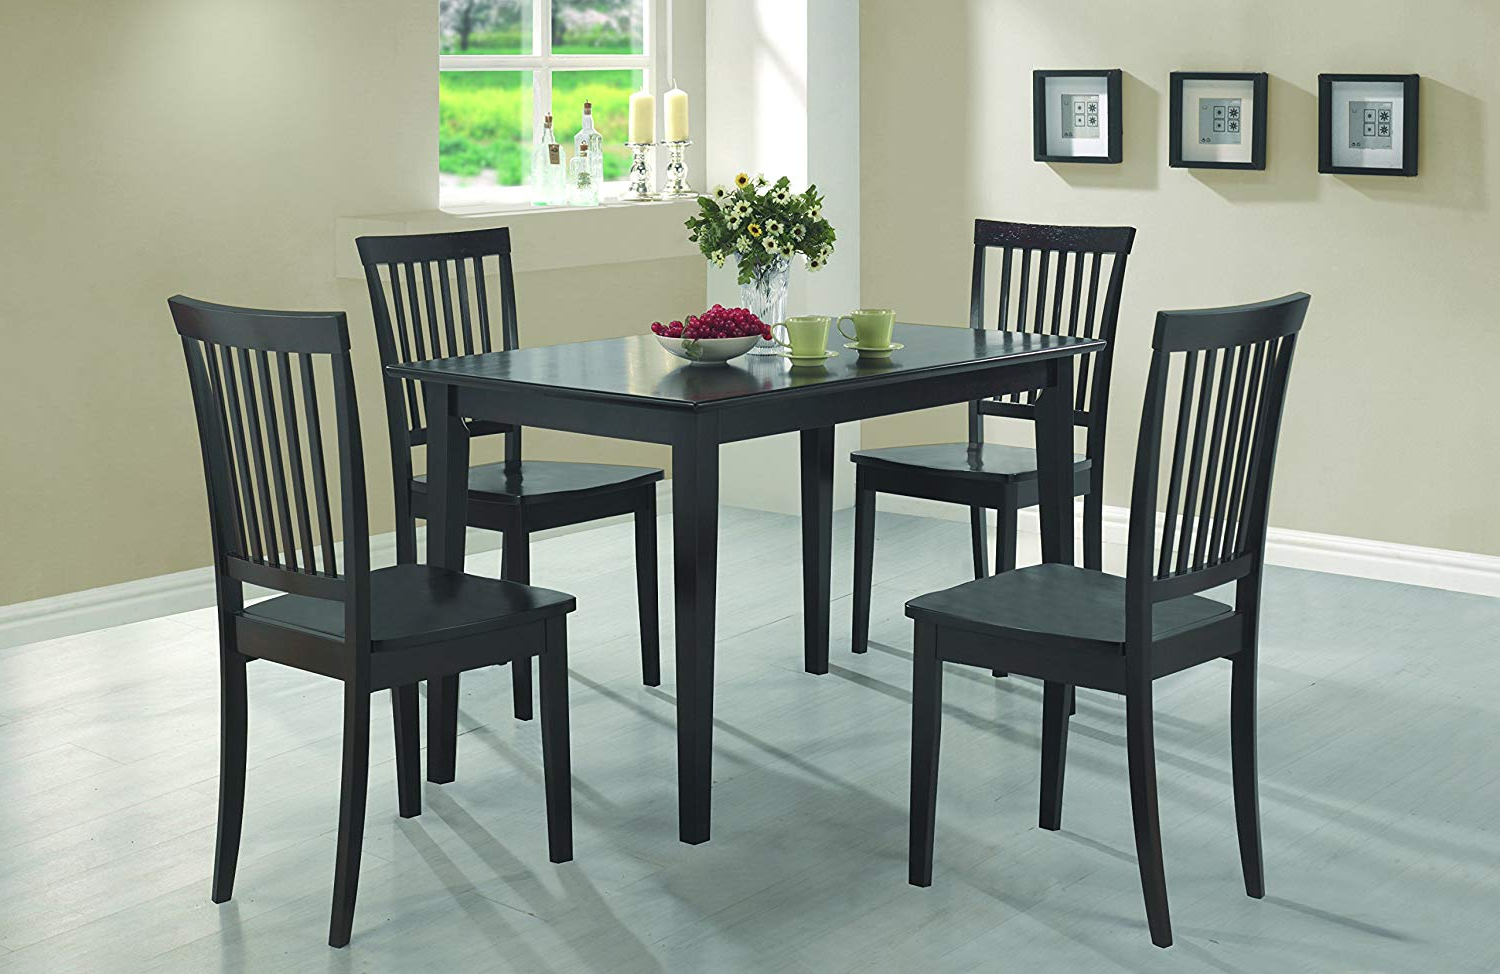 Amazon – Coaster 5 Piece Dining Set, Table Top With 4 Chairs Throughout Most Up To Date Kieffer 5 Piece Dining Sets (View 15 of 25)